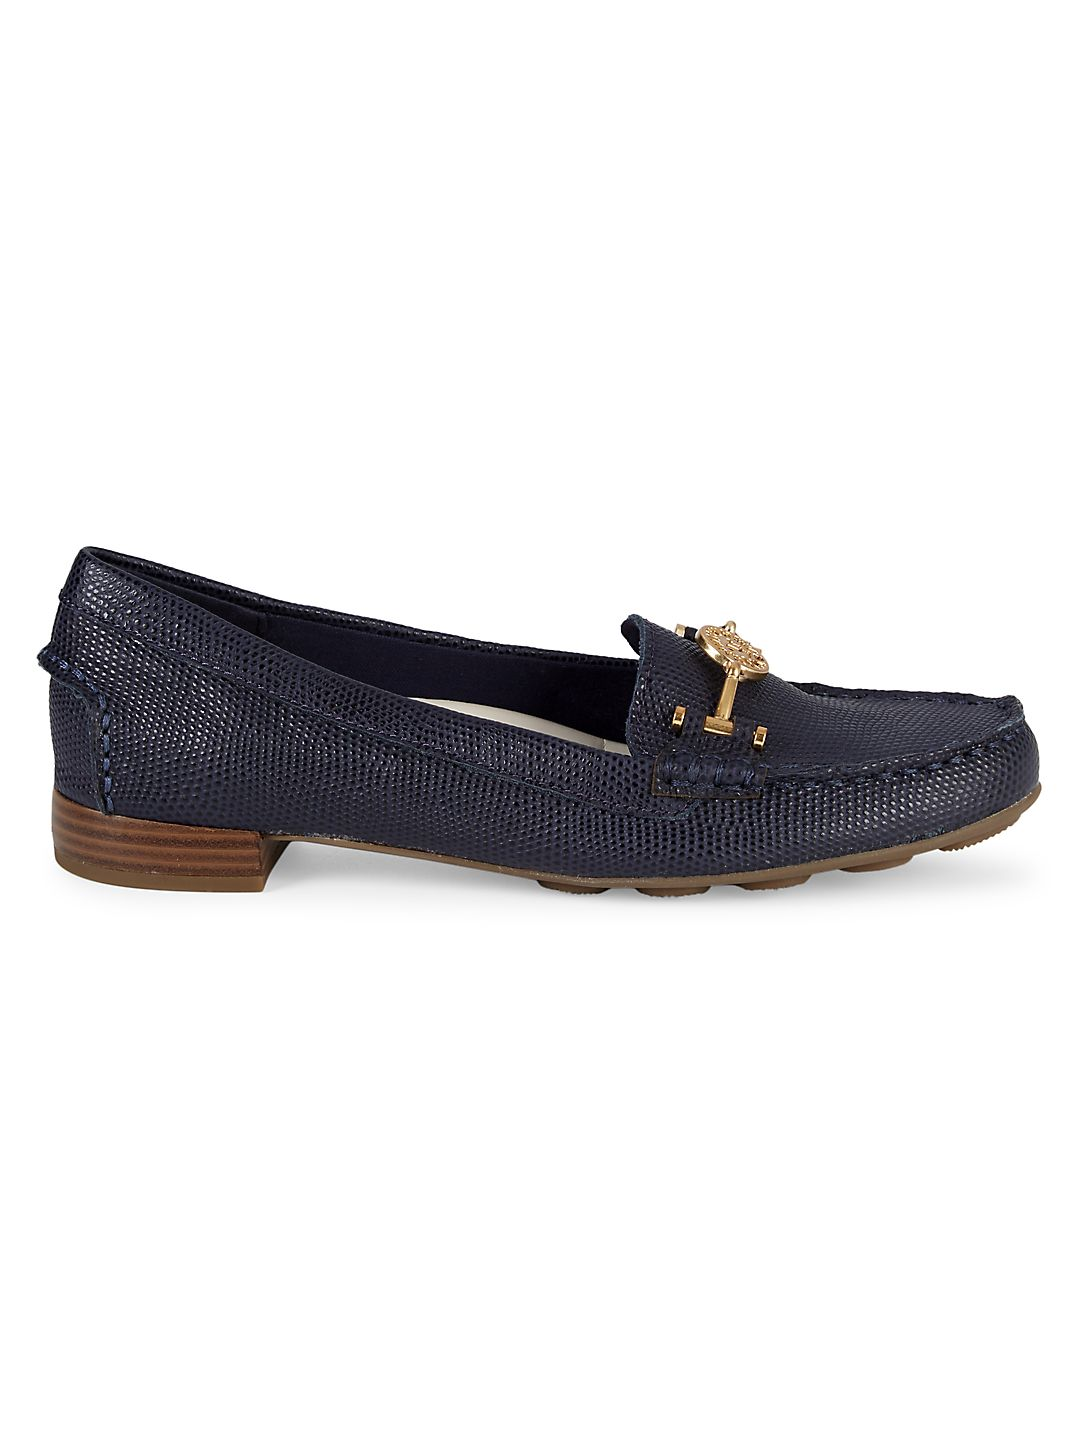 Hulia Buckle Loafers